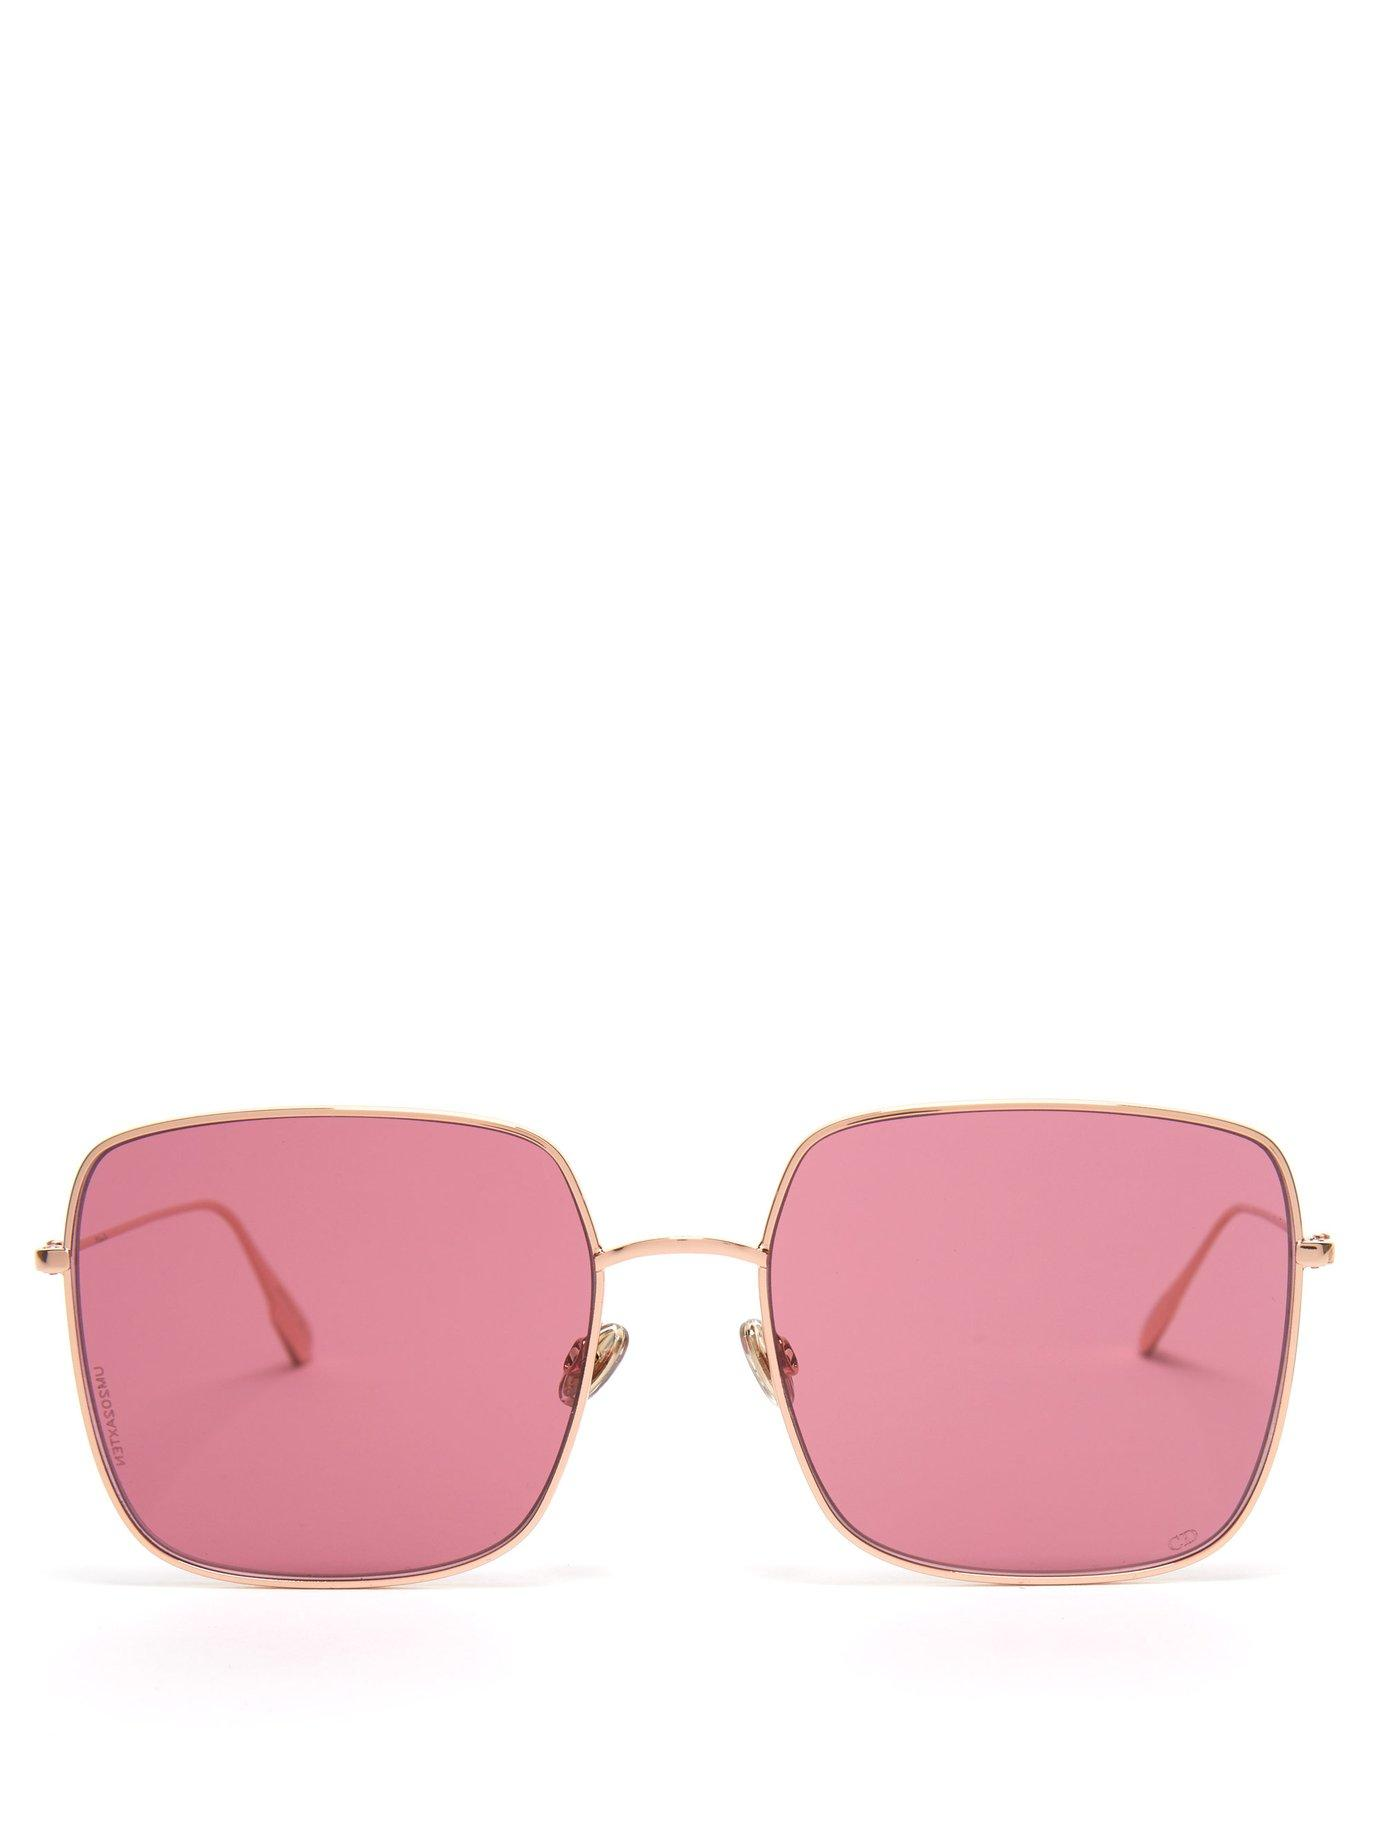 8ff62102cf4 Lyst - Dior Stellaire Square Sunglasses in Pink - Save 2%